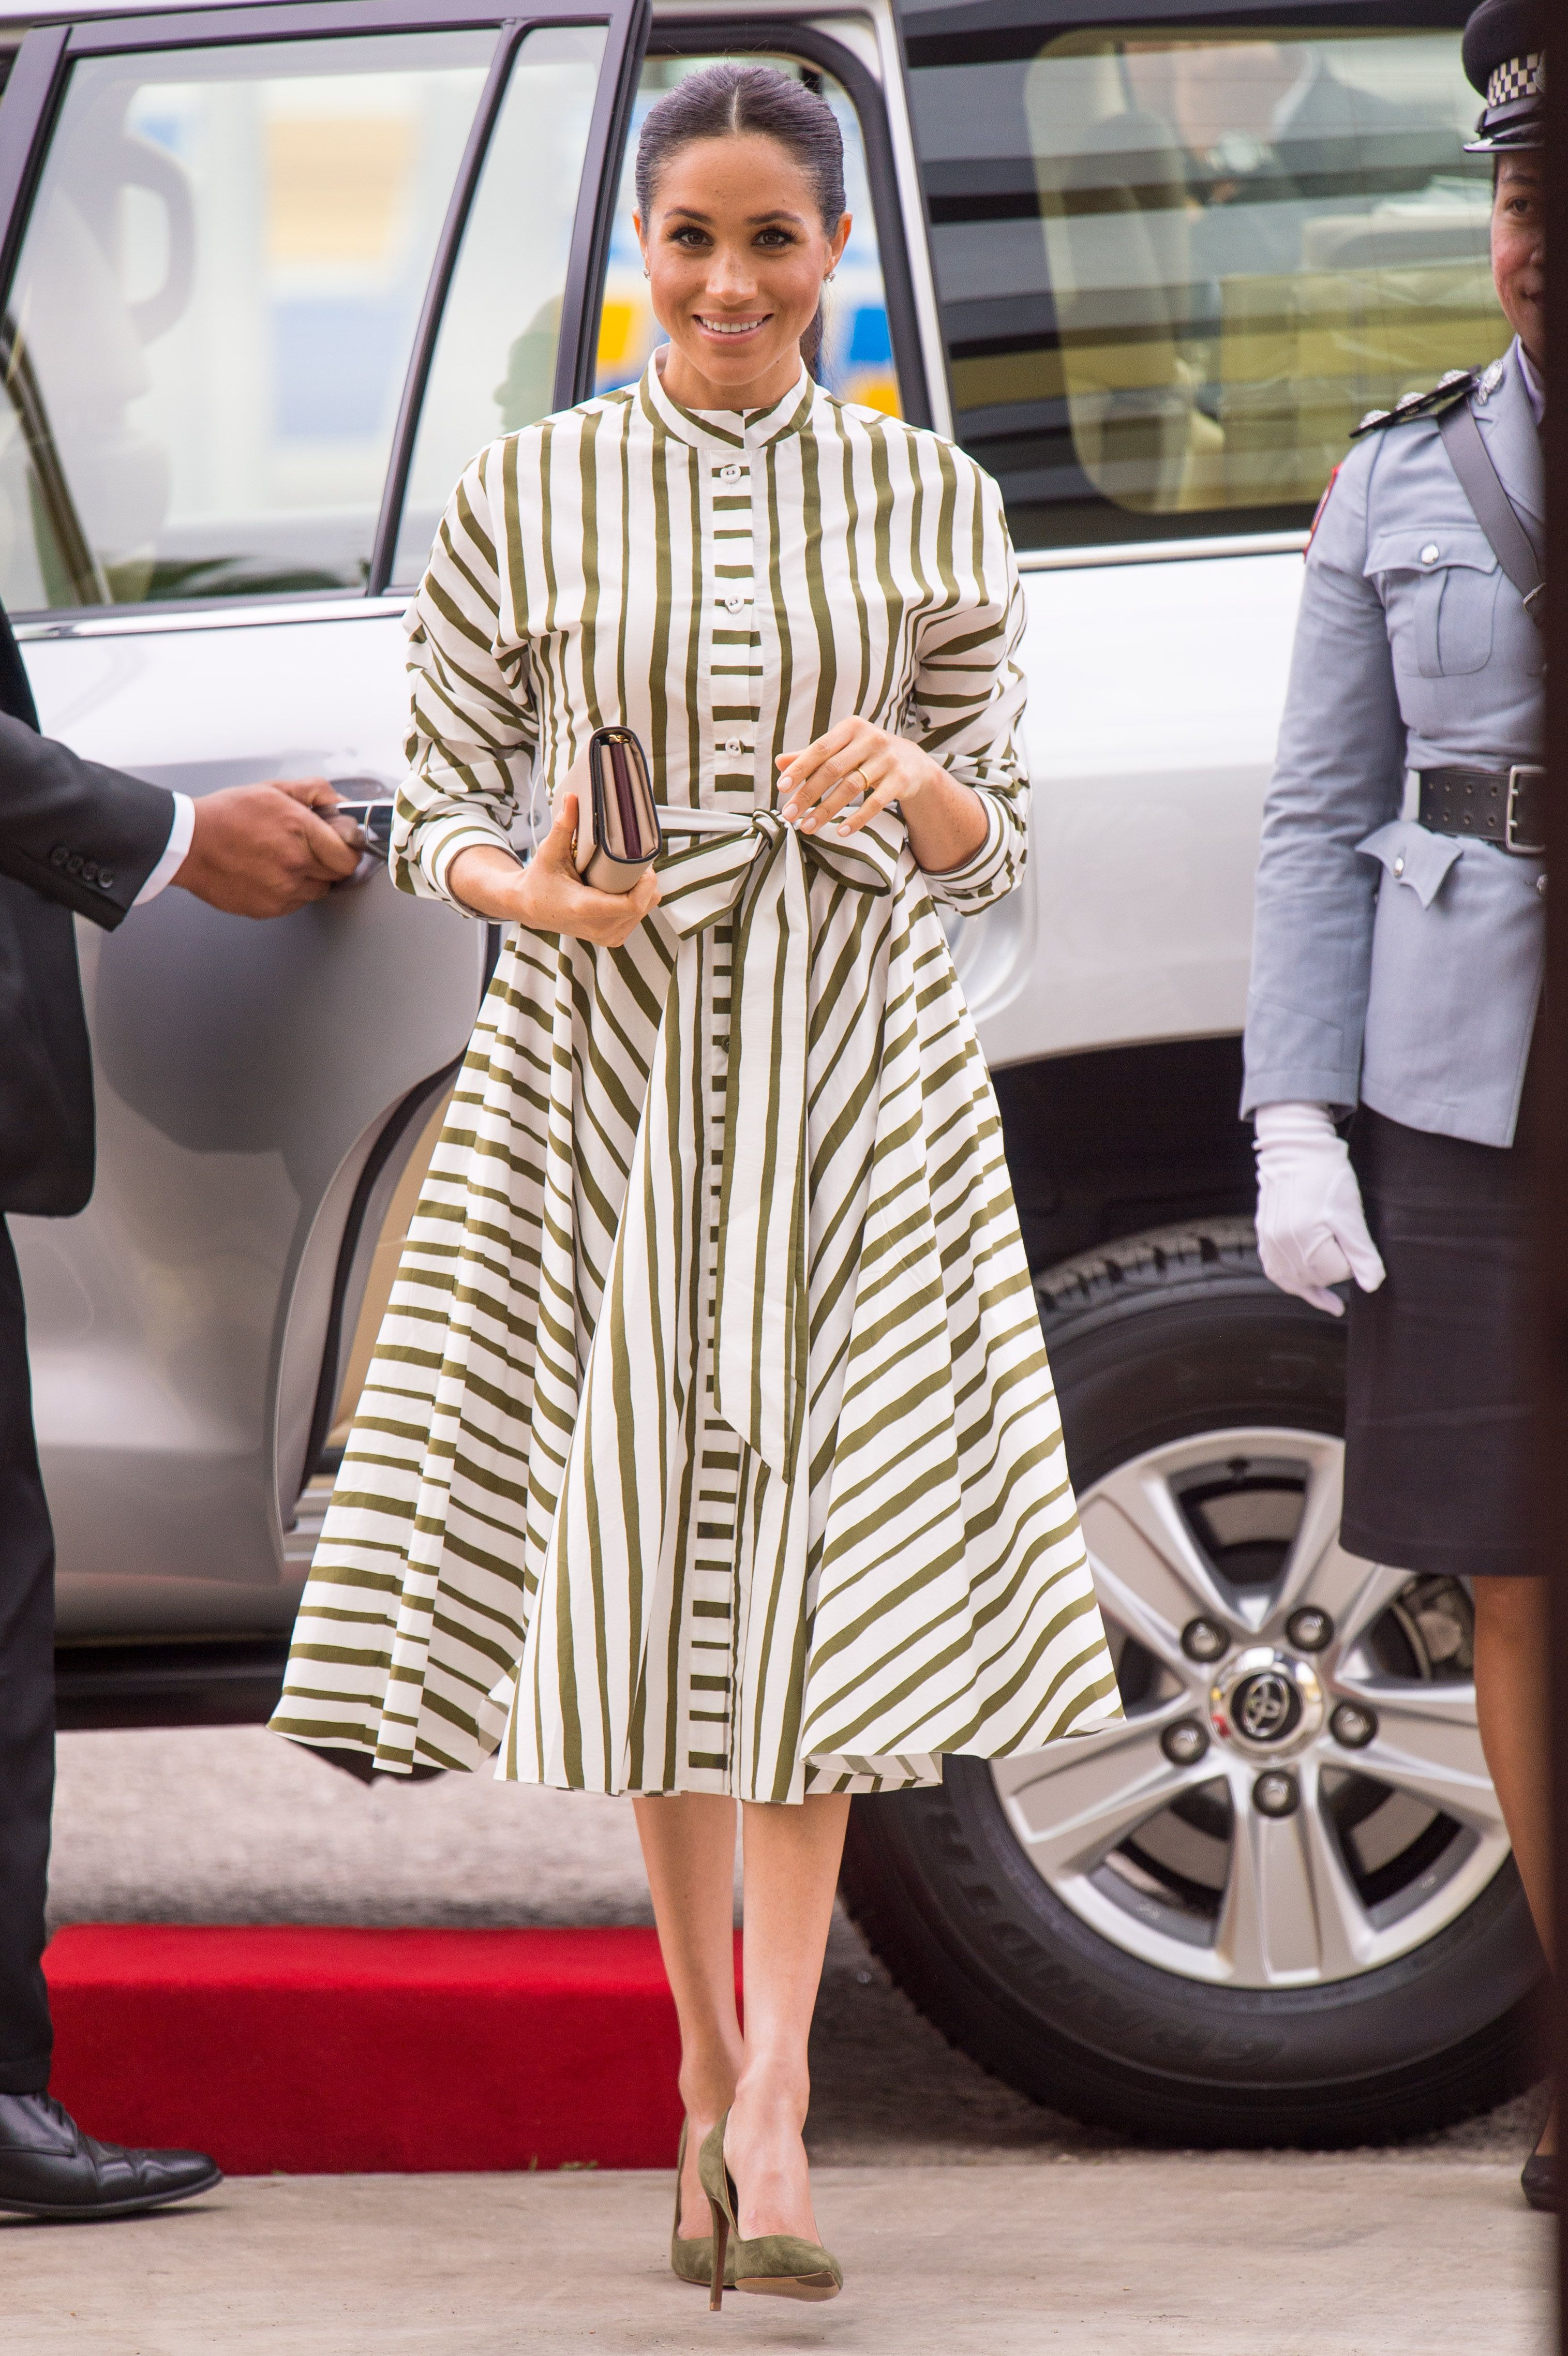 Meghan kicked off her second day in Tonga wearing a striped dress by Martin Grant. She finished her outfit off with a clutch by Prada and green heels.